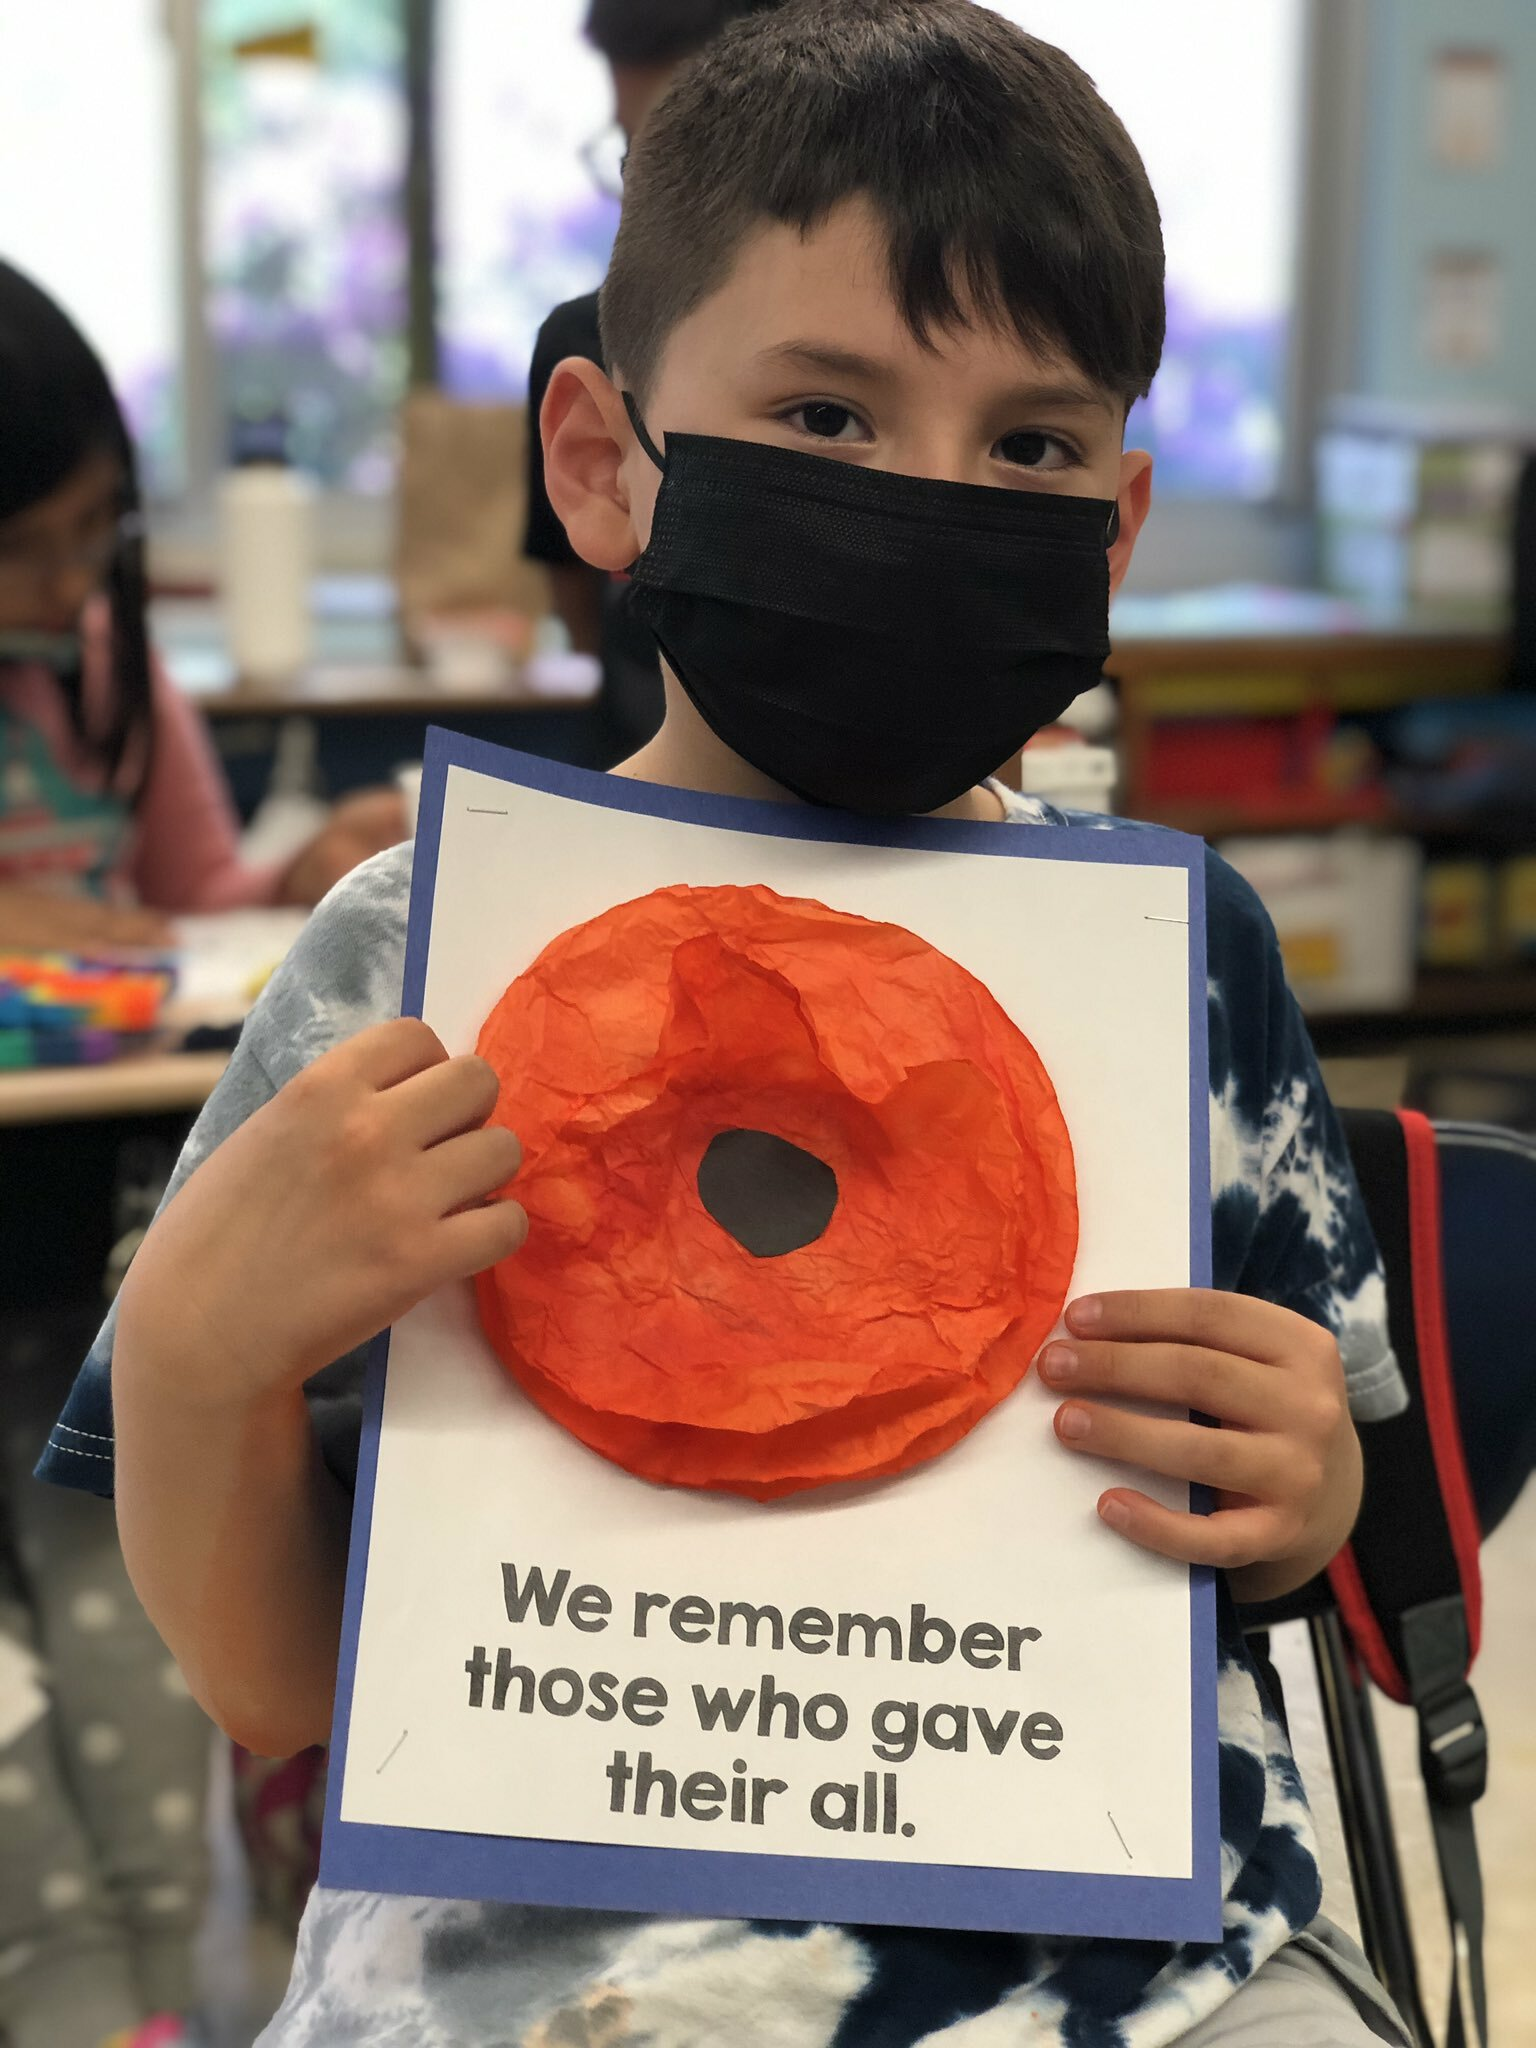 Hampton Bays Elementary School students recently learned more about Memorial Day and honoring those who served. In addition to the lessons, Erin McDermott's second grade class made red paper poppies, while Lauren Mikelinich's first graders designed red, white and blue paper plate wreaths.